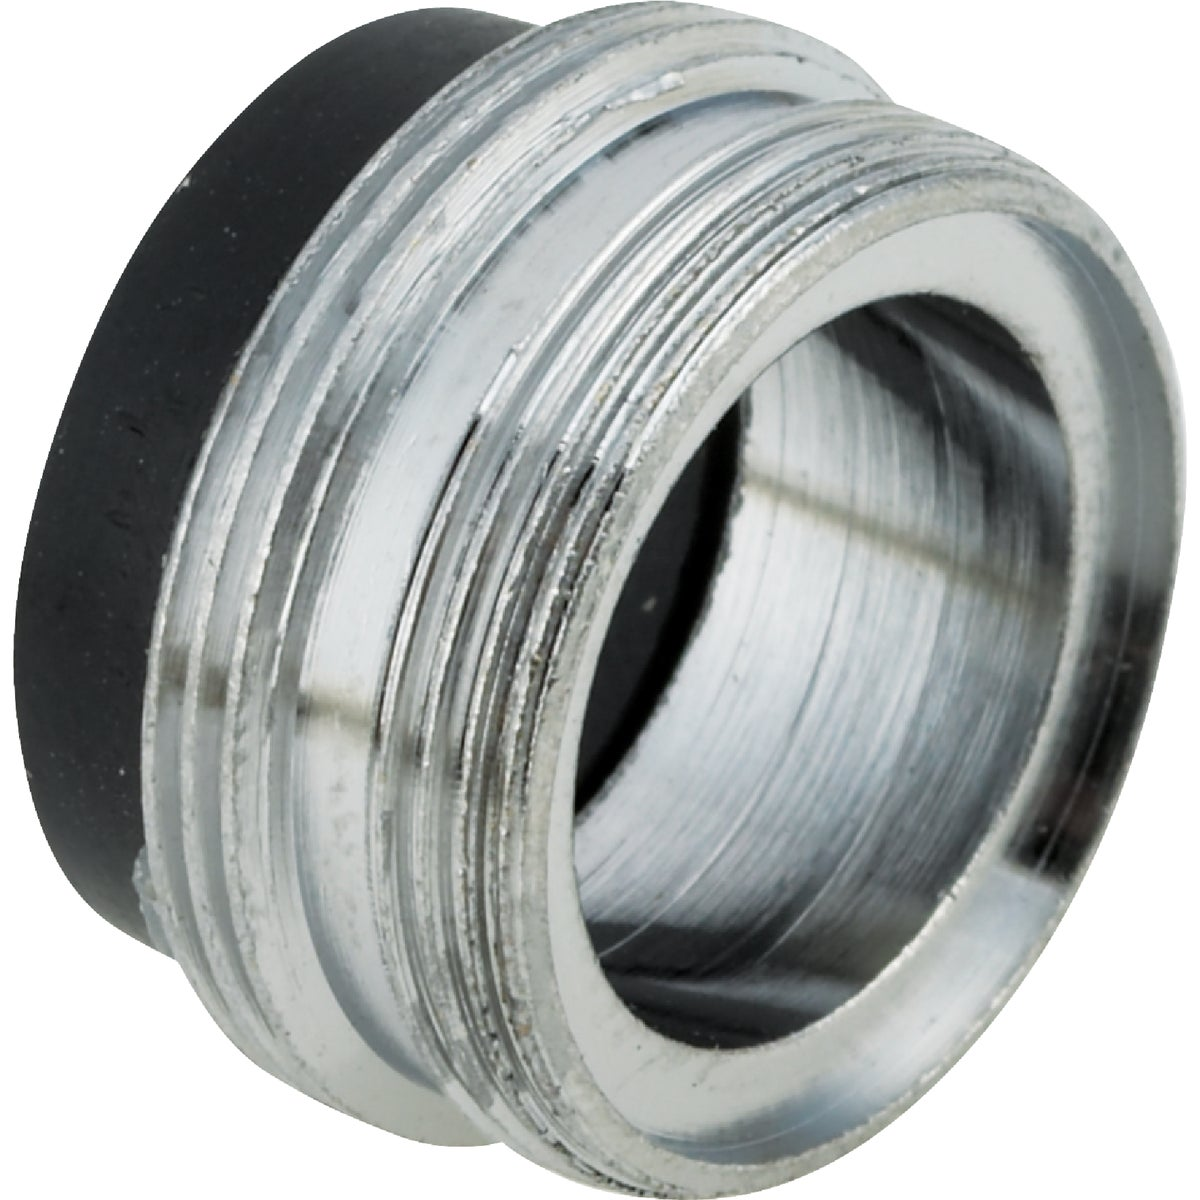 CHROME AERATOR ADAPTER